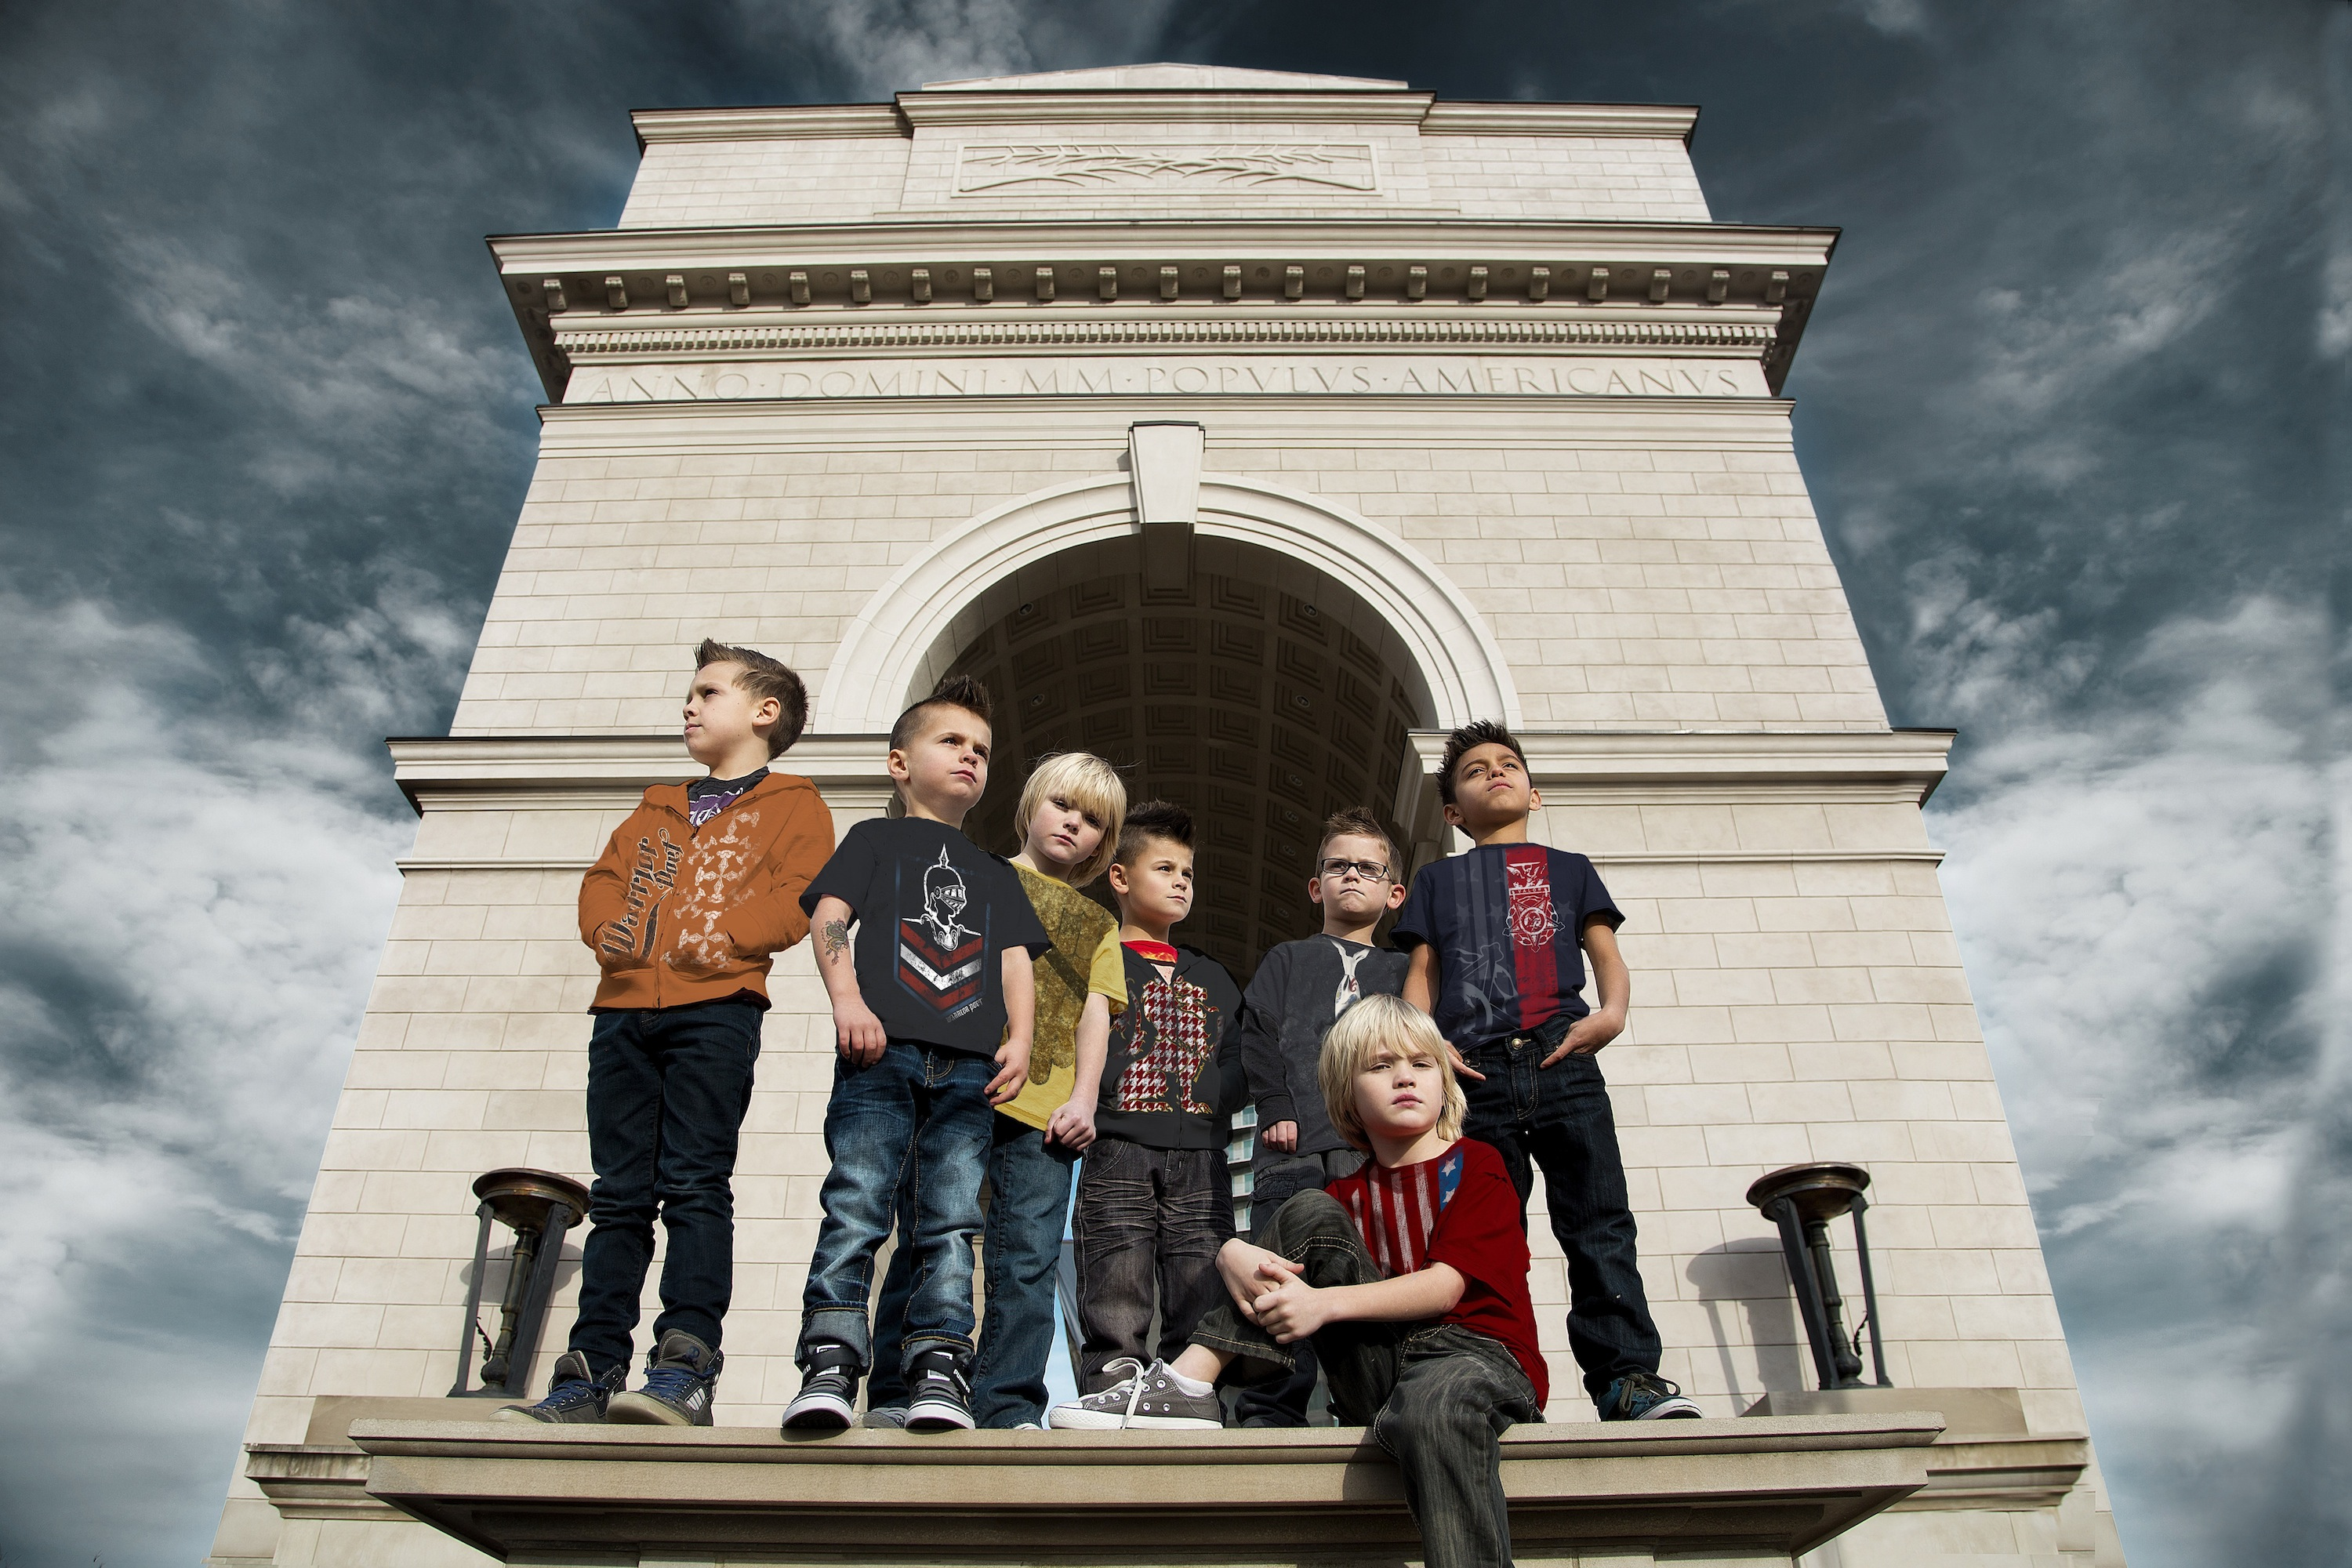 Warrior Poet Clothing: A cool new line for boys that blends courage with coolness